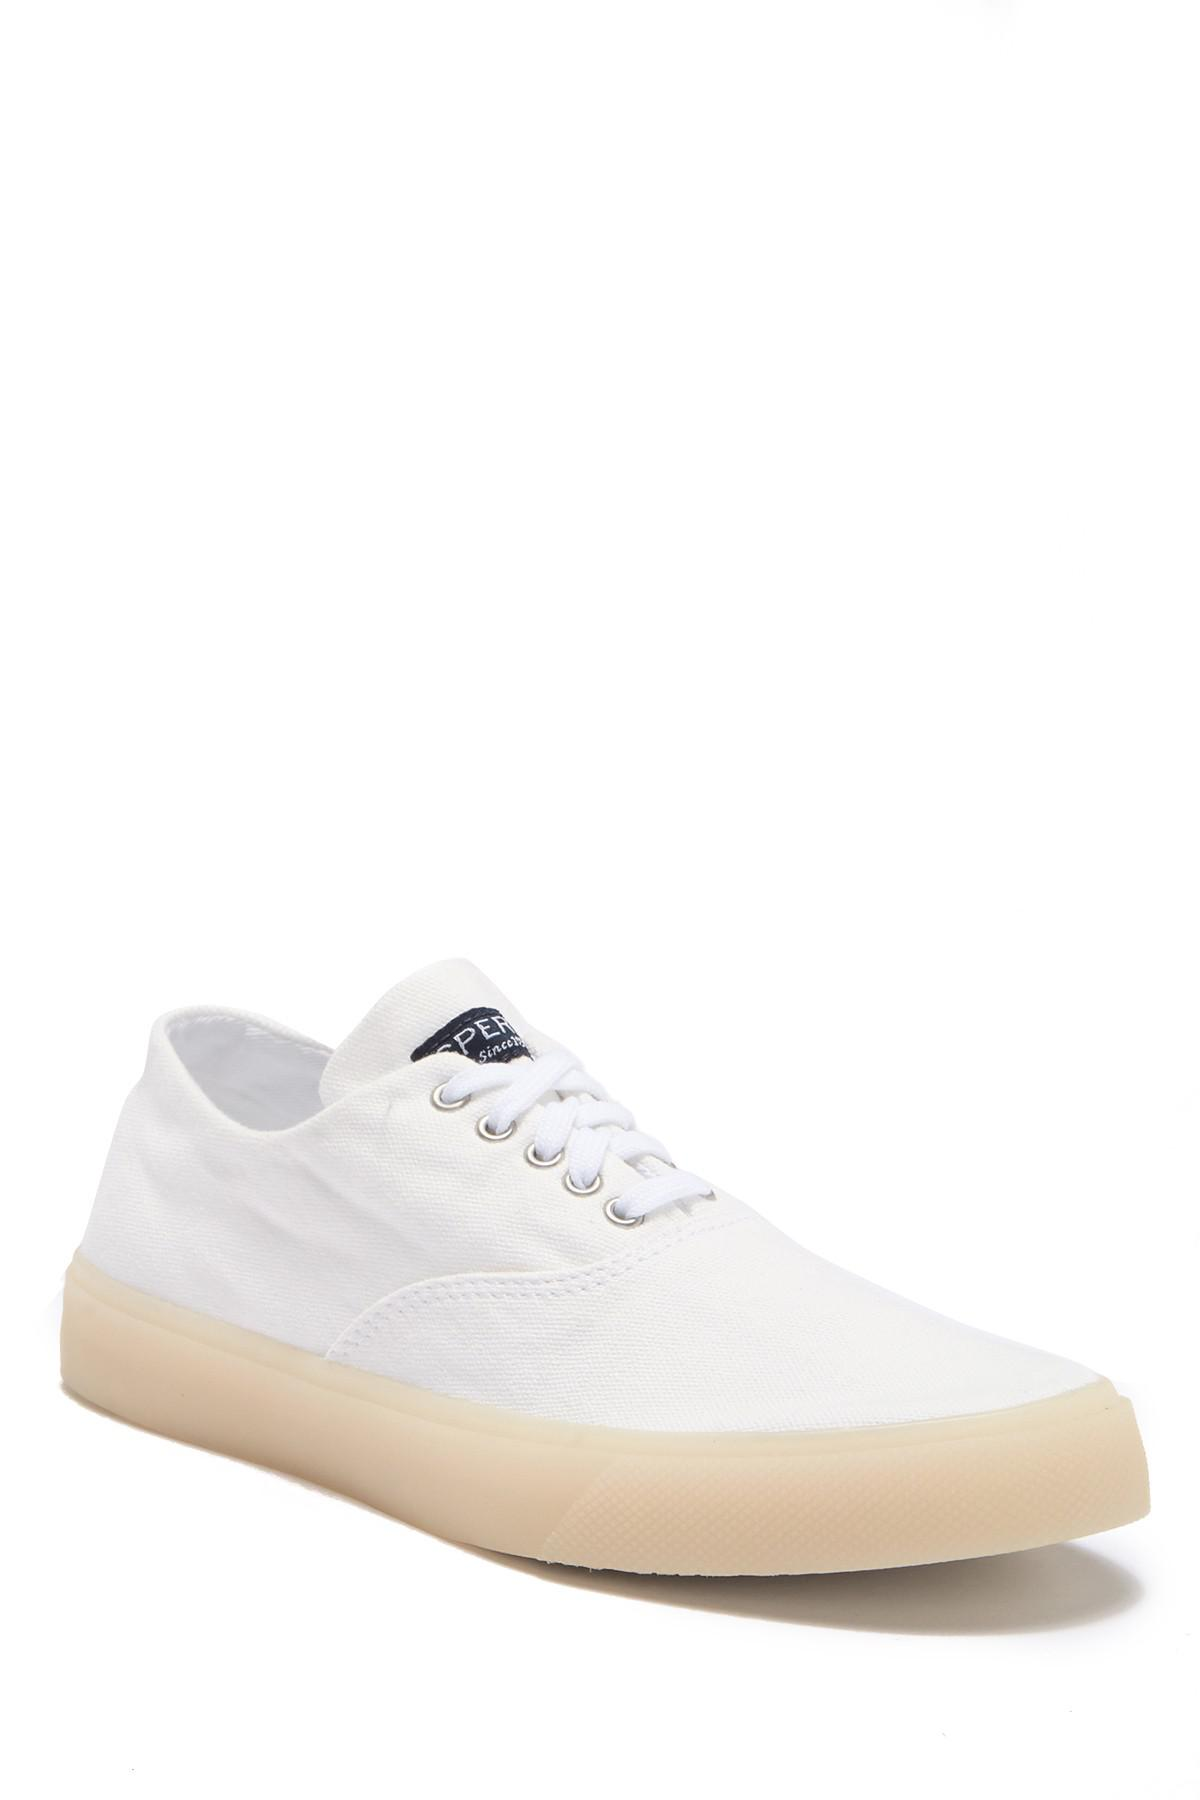 Sperry Captains CVO Drink Sneaker